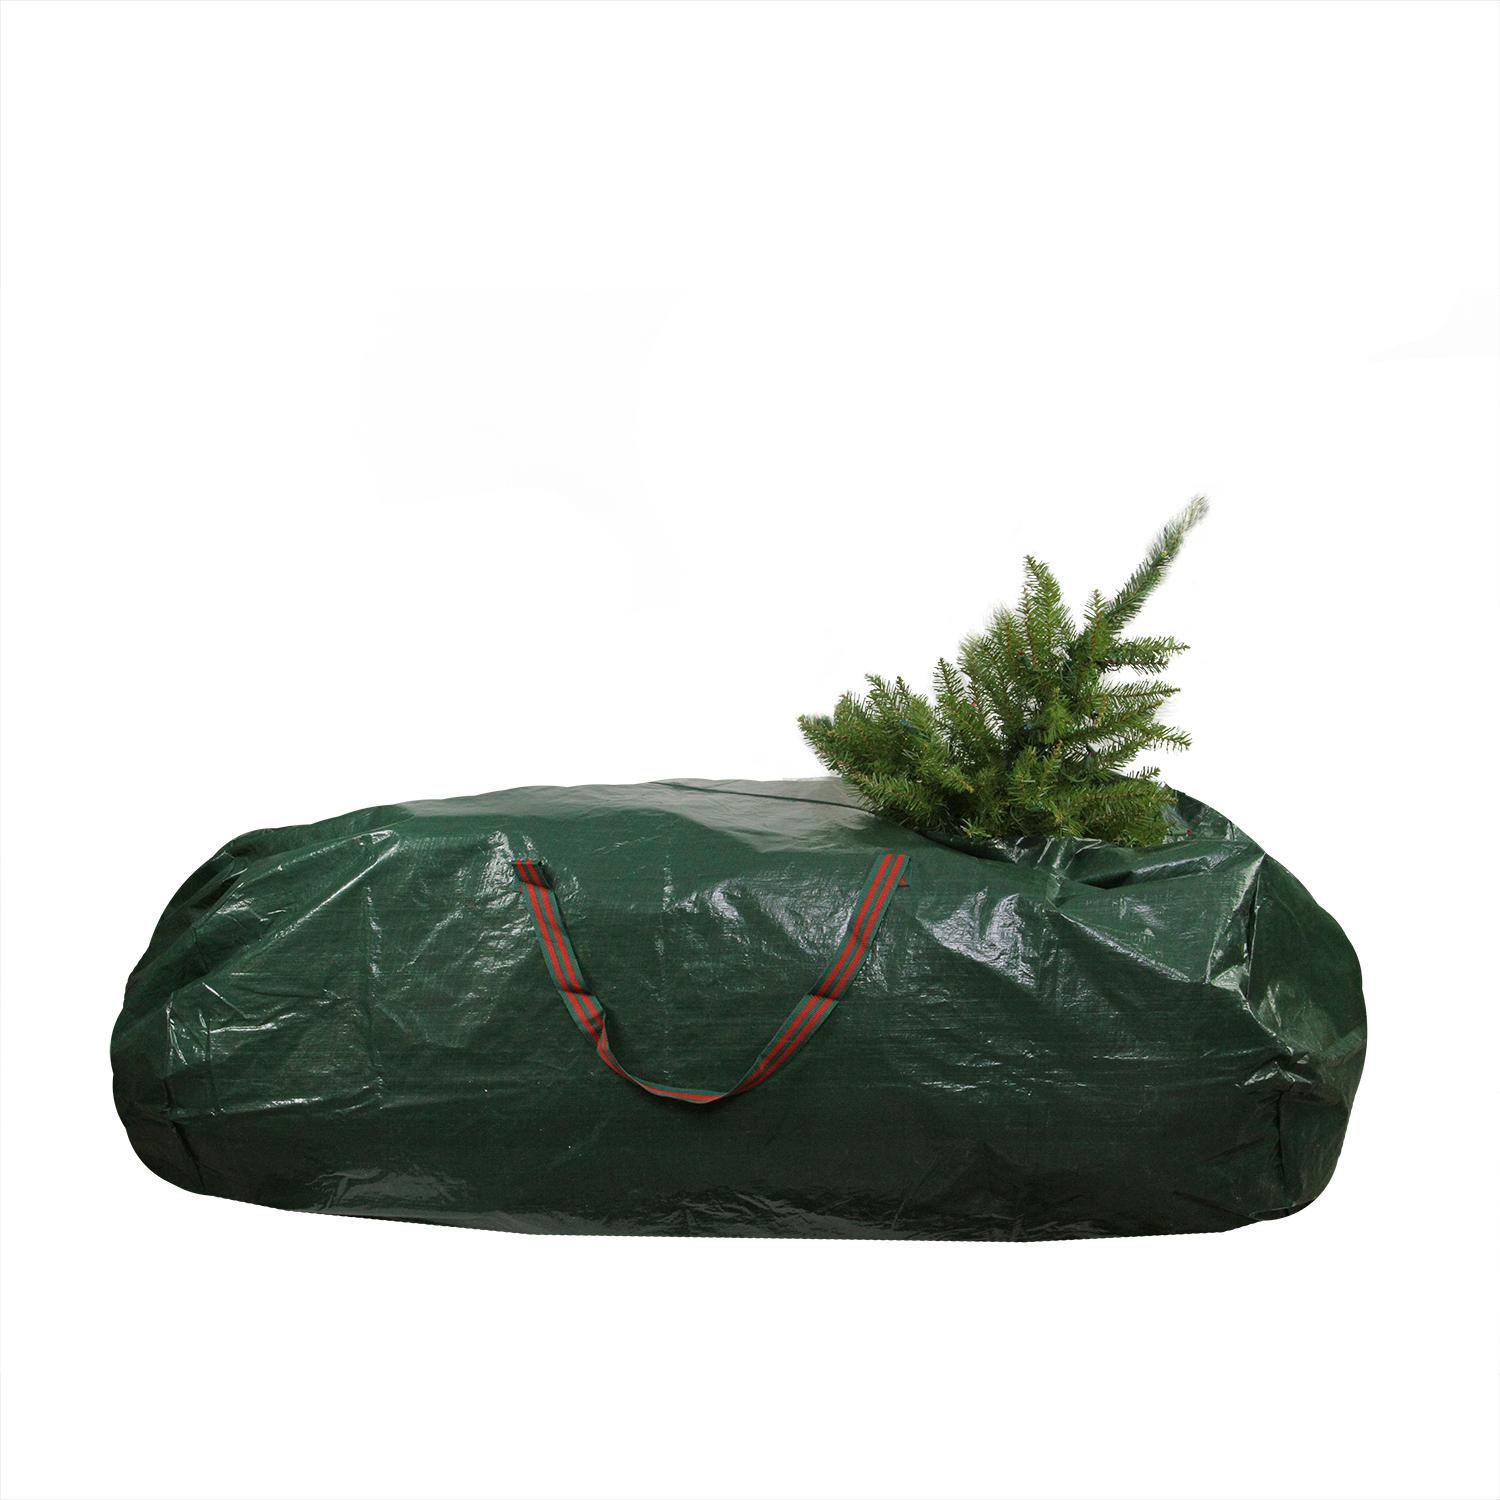 Artificial Christmas Tree Storage Bag - Fits Up To A 9' Tree - image 2 of 2